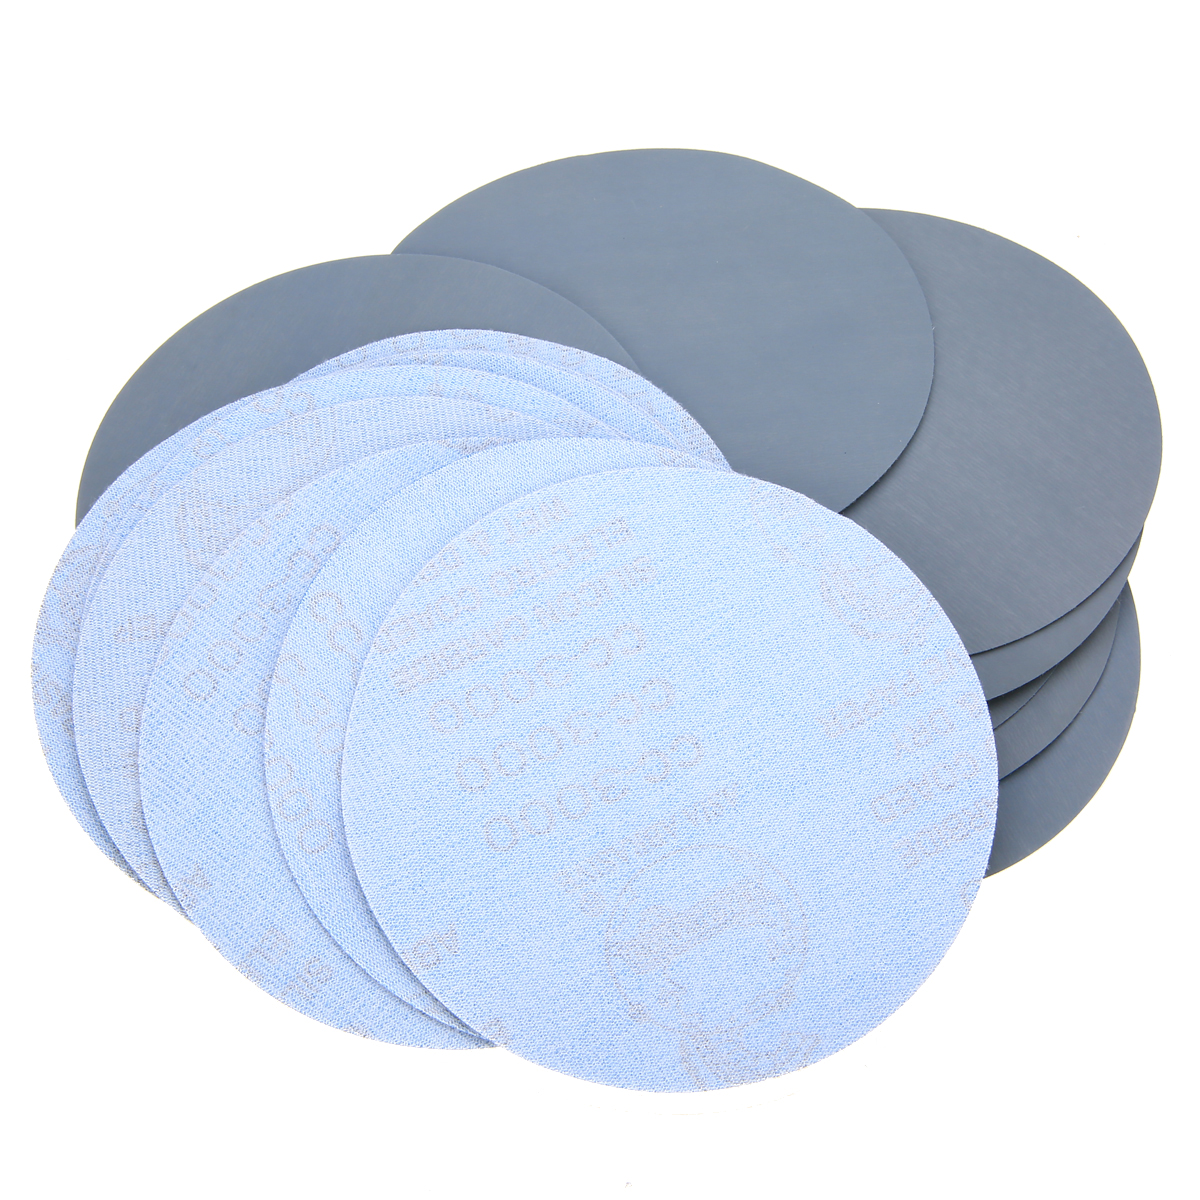 20Pcs 6 3000 Grit Sanding Disc Pad Polishing Pad Sanding Paper Sheets for Abrasive Tools williams amstrad disc companion paper only